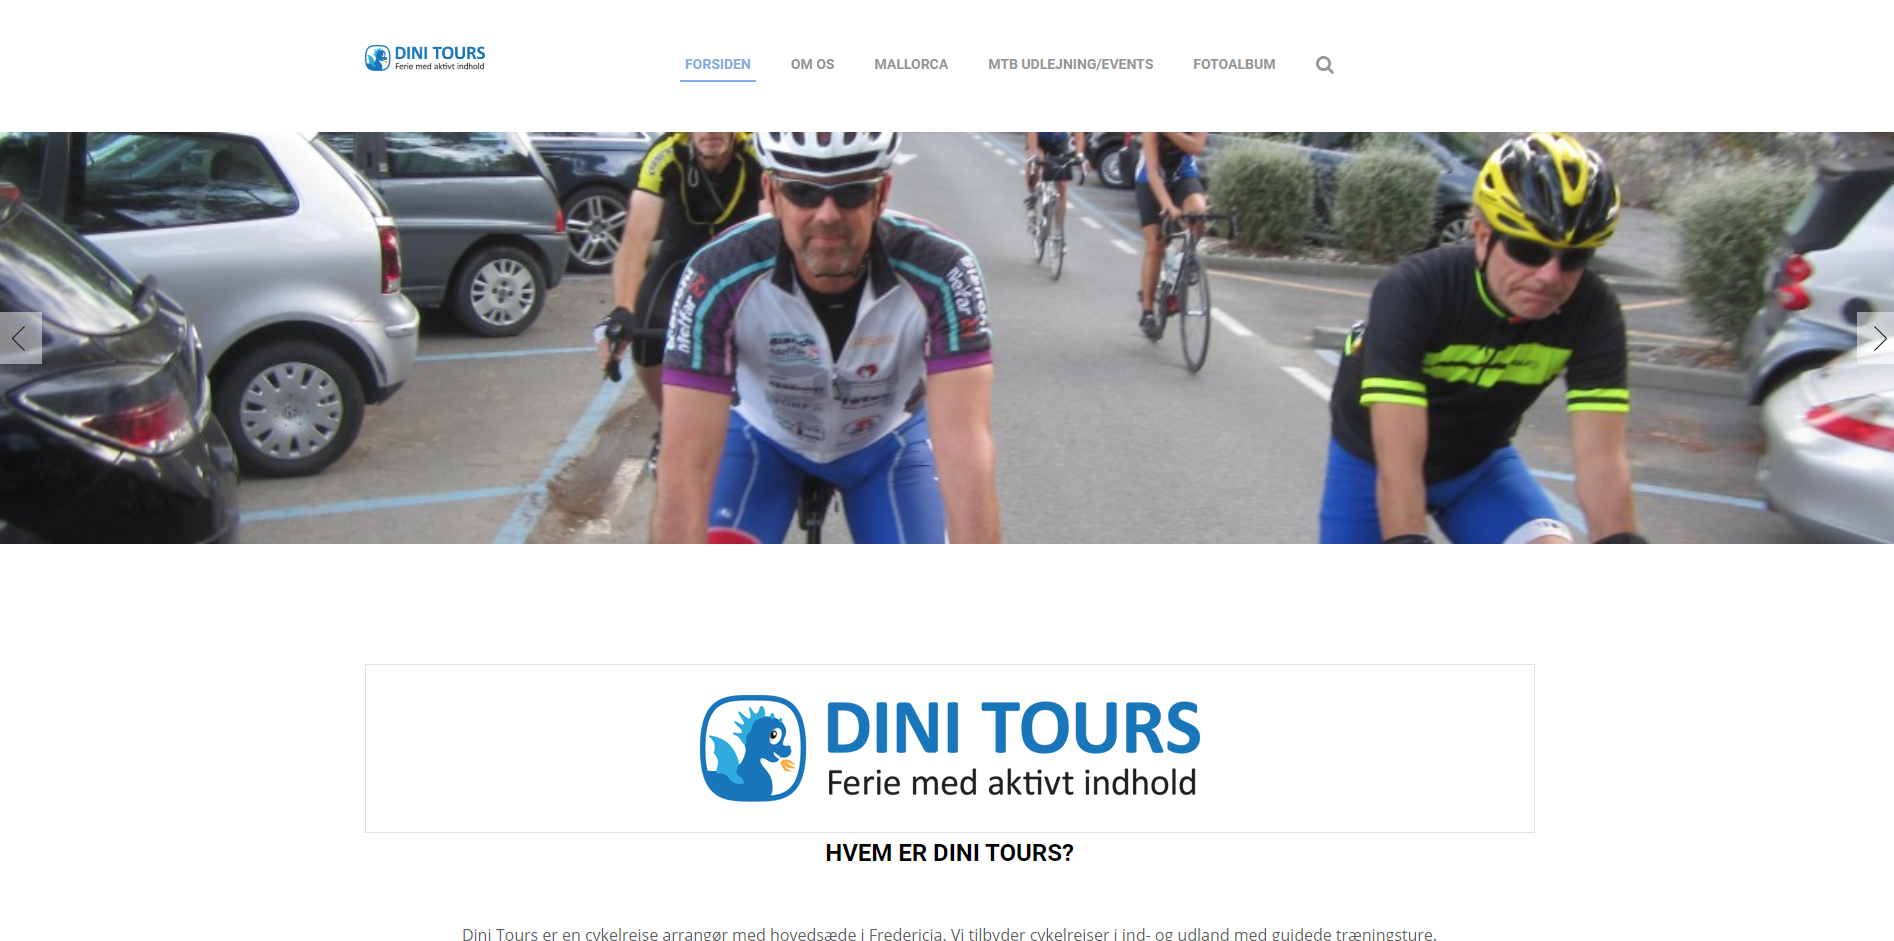 Dinitours.dk